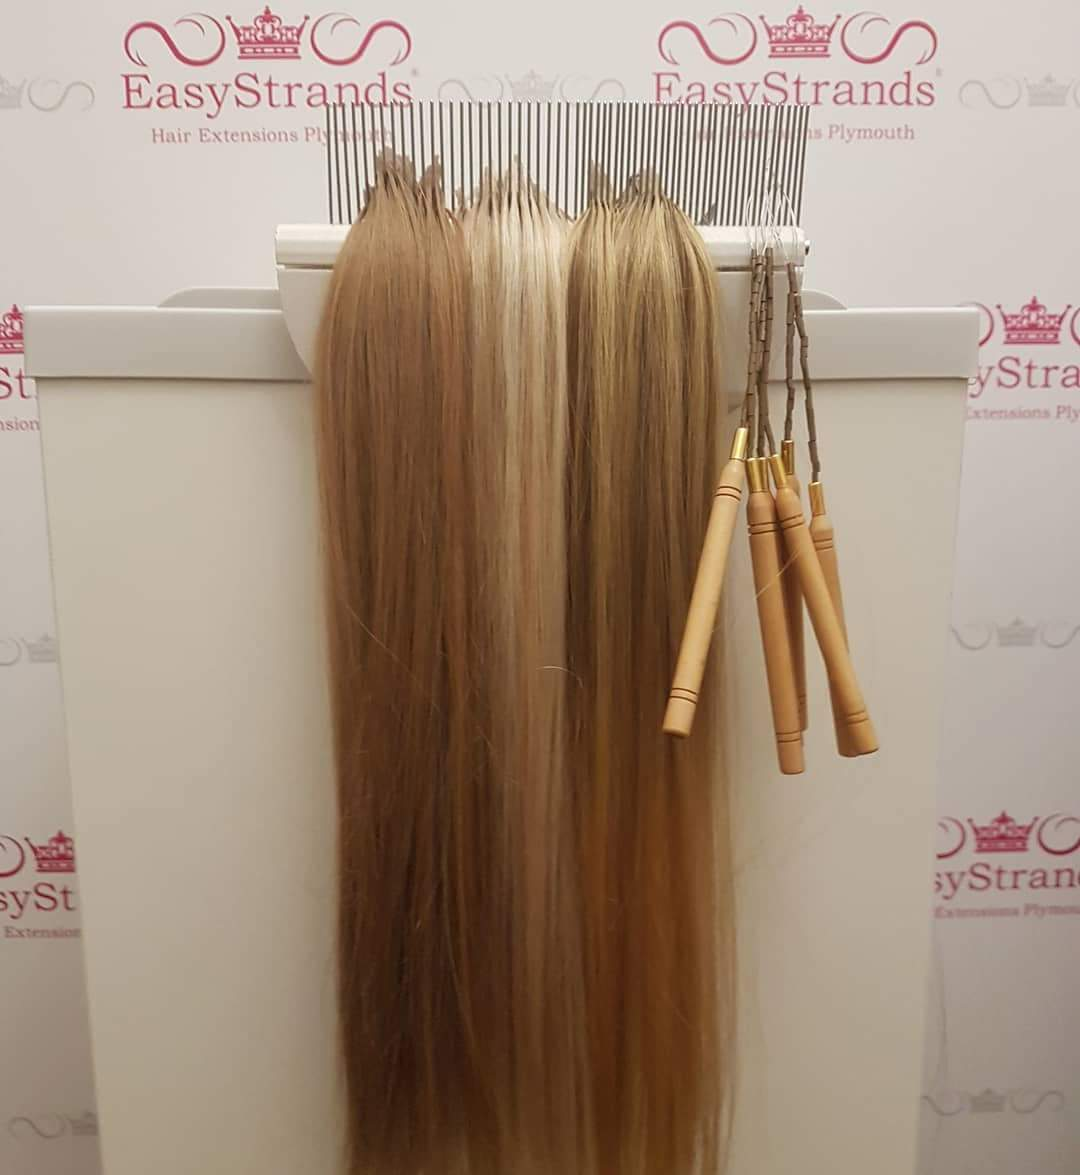 Easystrands Ltd On Twitter Easystrands The Easier Way To Fit Hair